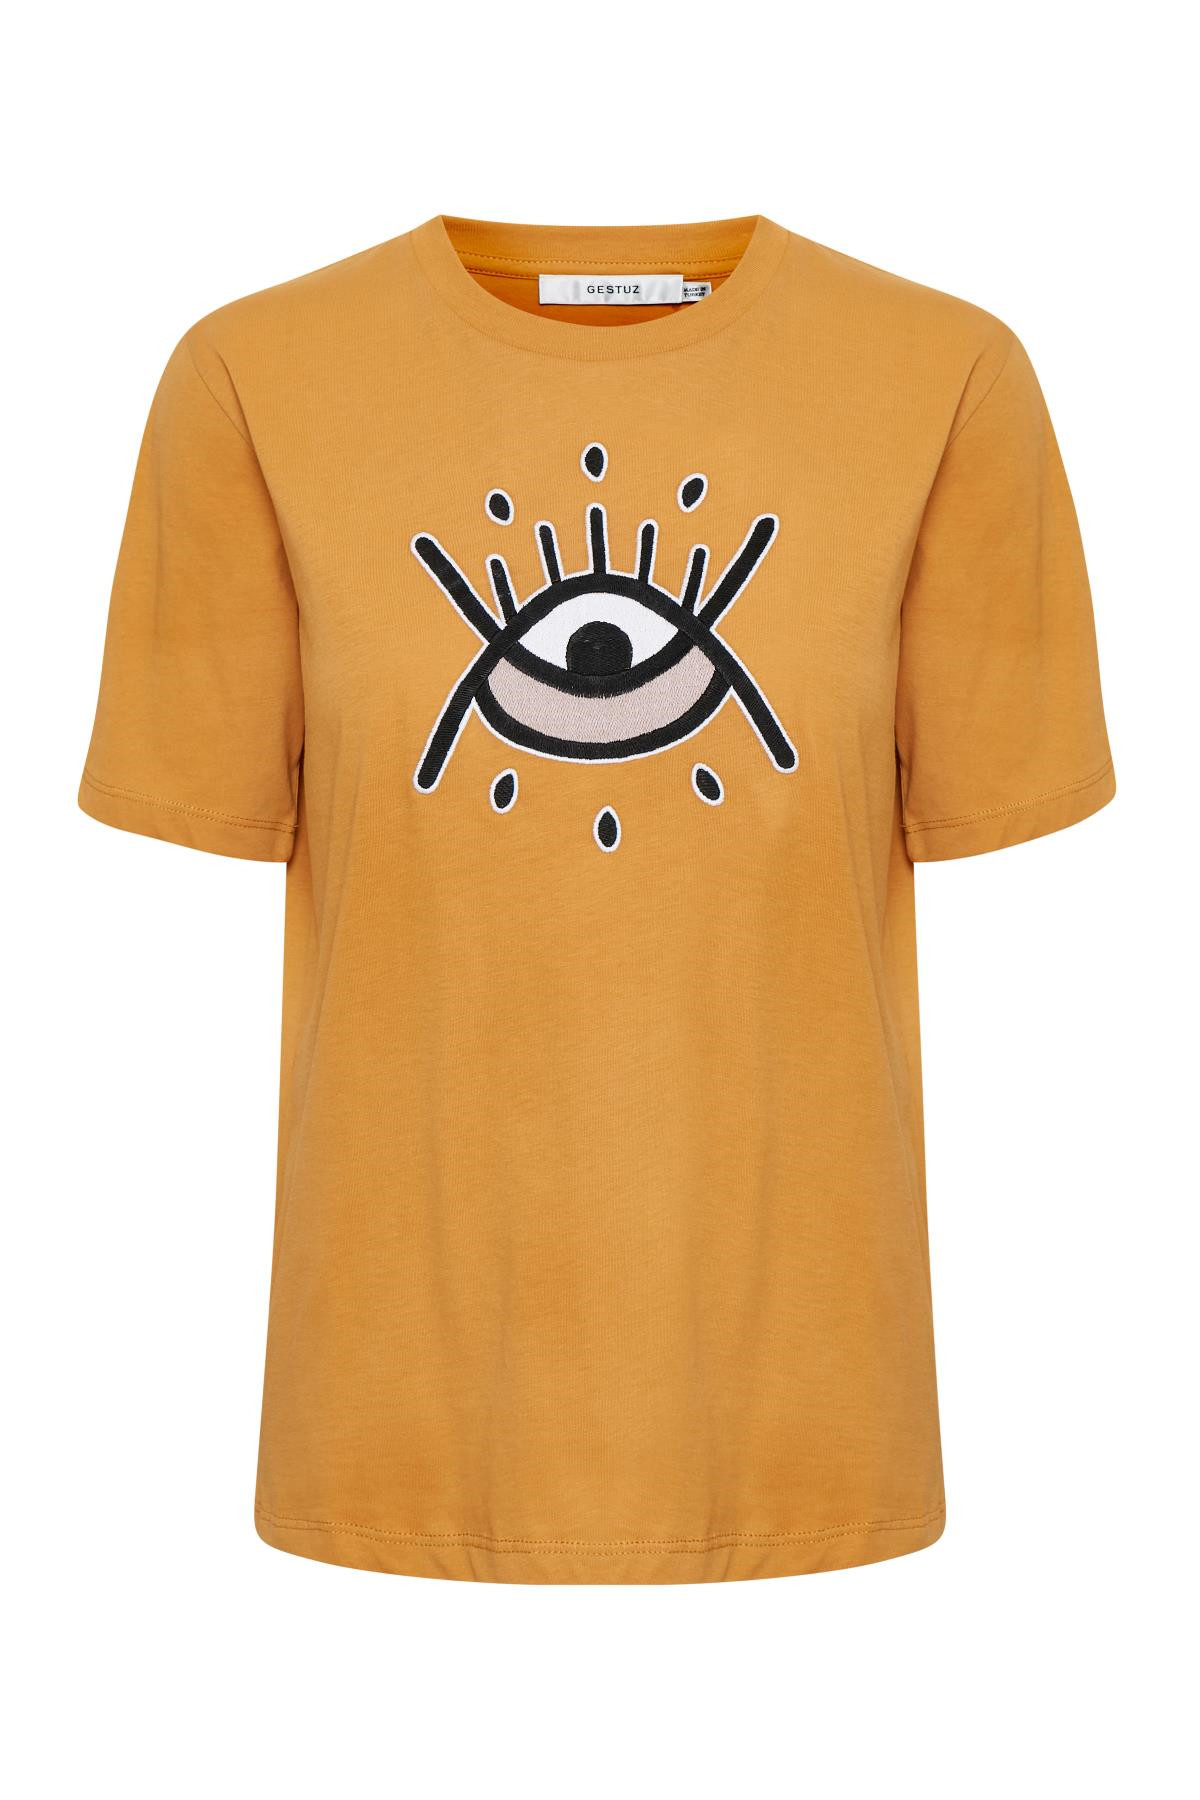 Image of   GESTUZ UNIVERSEGZ TEE N (Narcissus Yellow 90576, S)